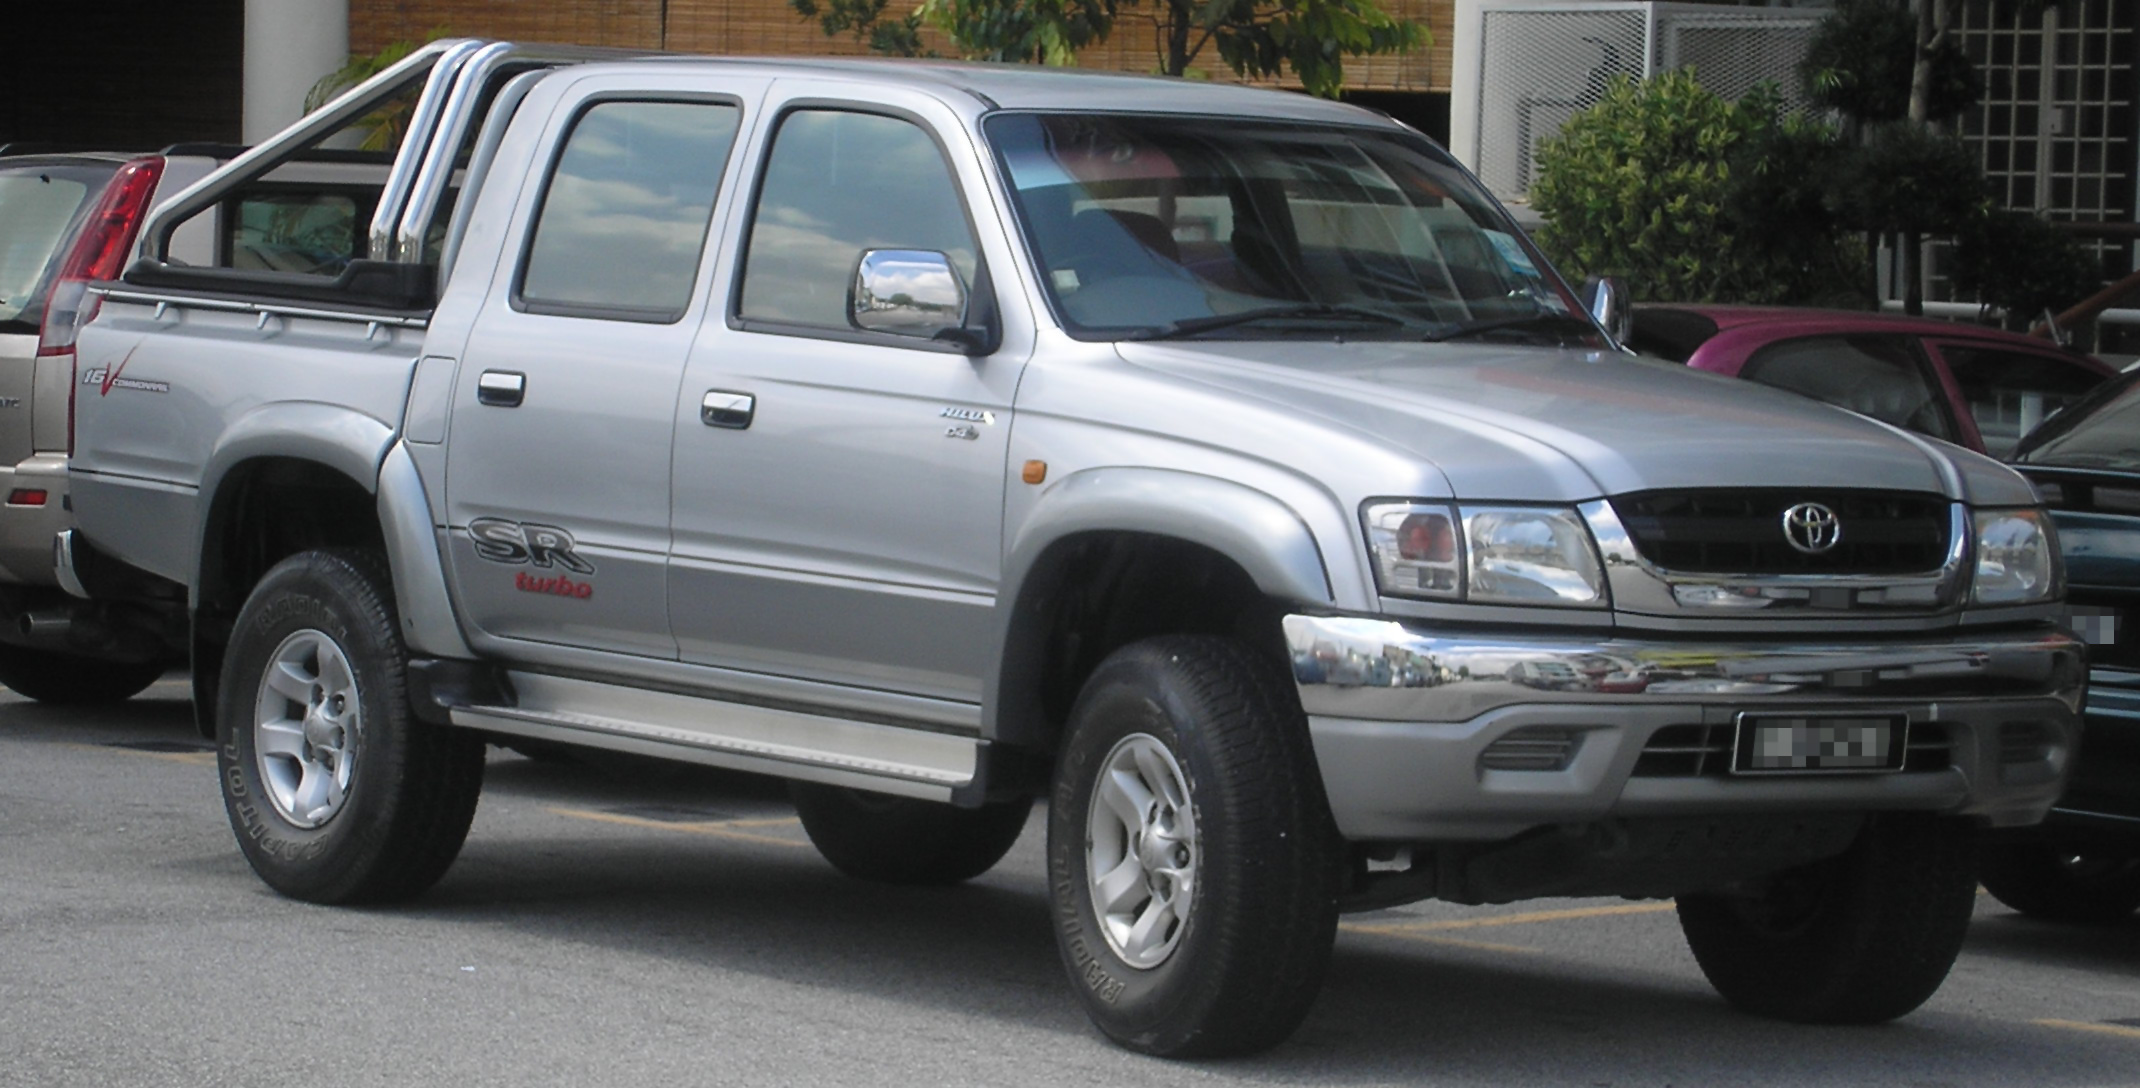 Descripción Toyota Hilux (seventh generation, first facelift) (front